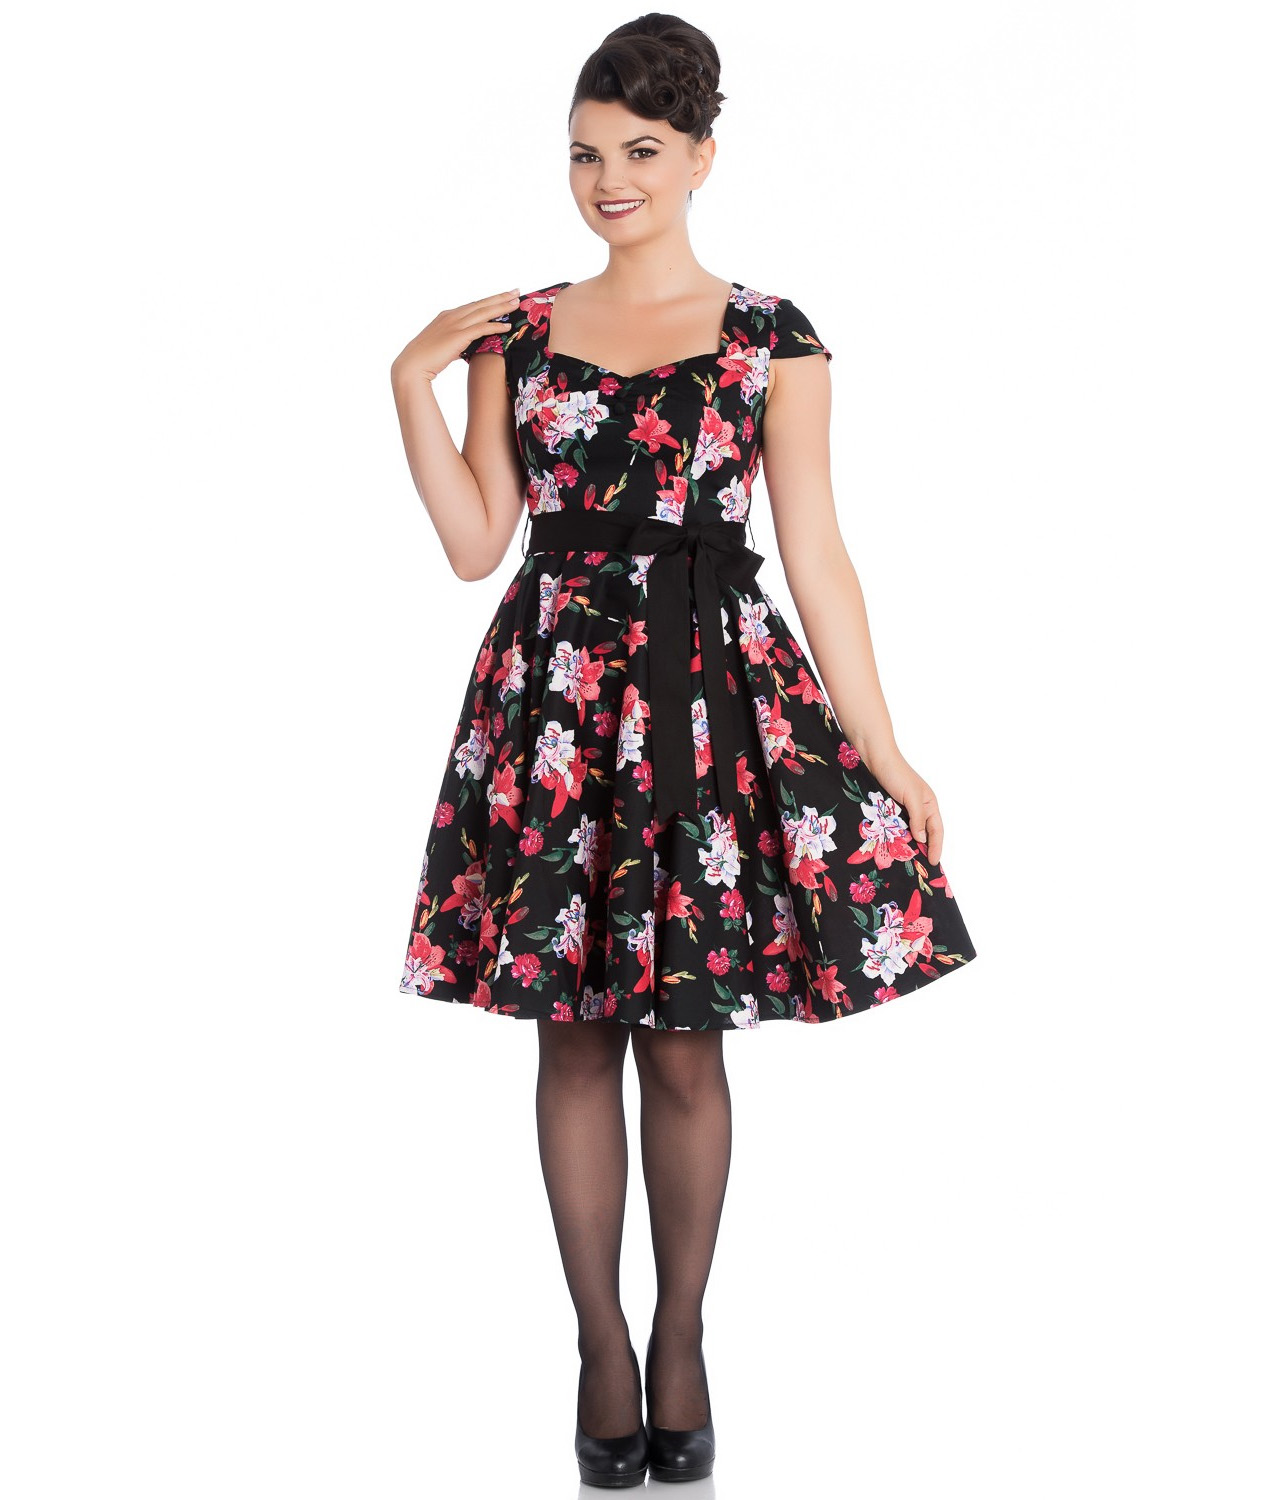 Hell-Bunny-Pin-Up-Mid-Length-50s-Dress-LILIANA-Lilly-Black-Flowers-Bow-All-Sizes thumbnail 11